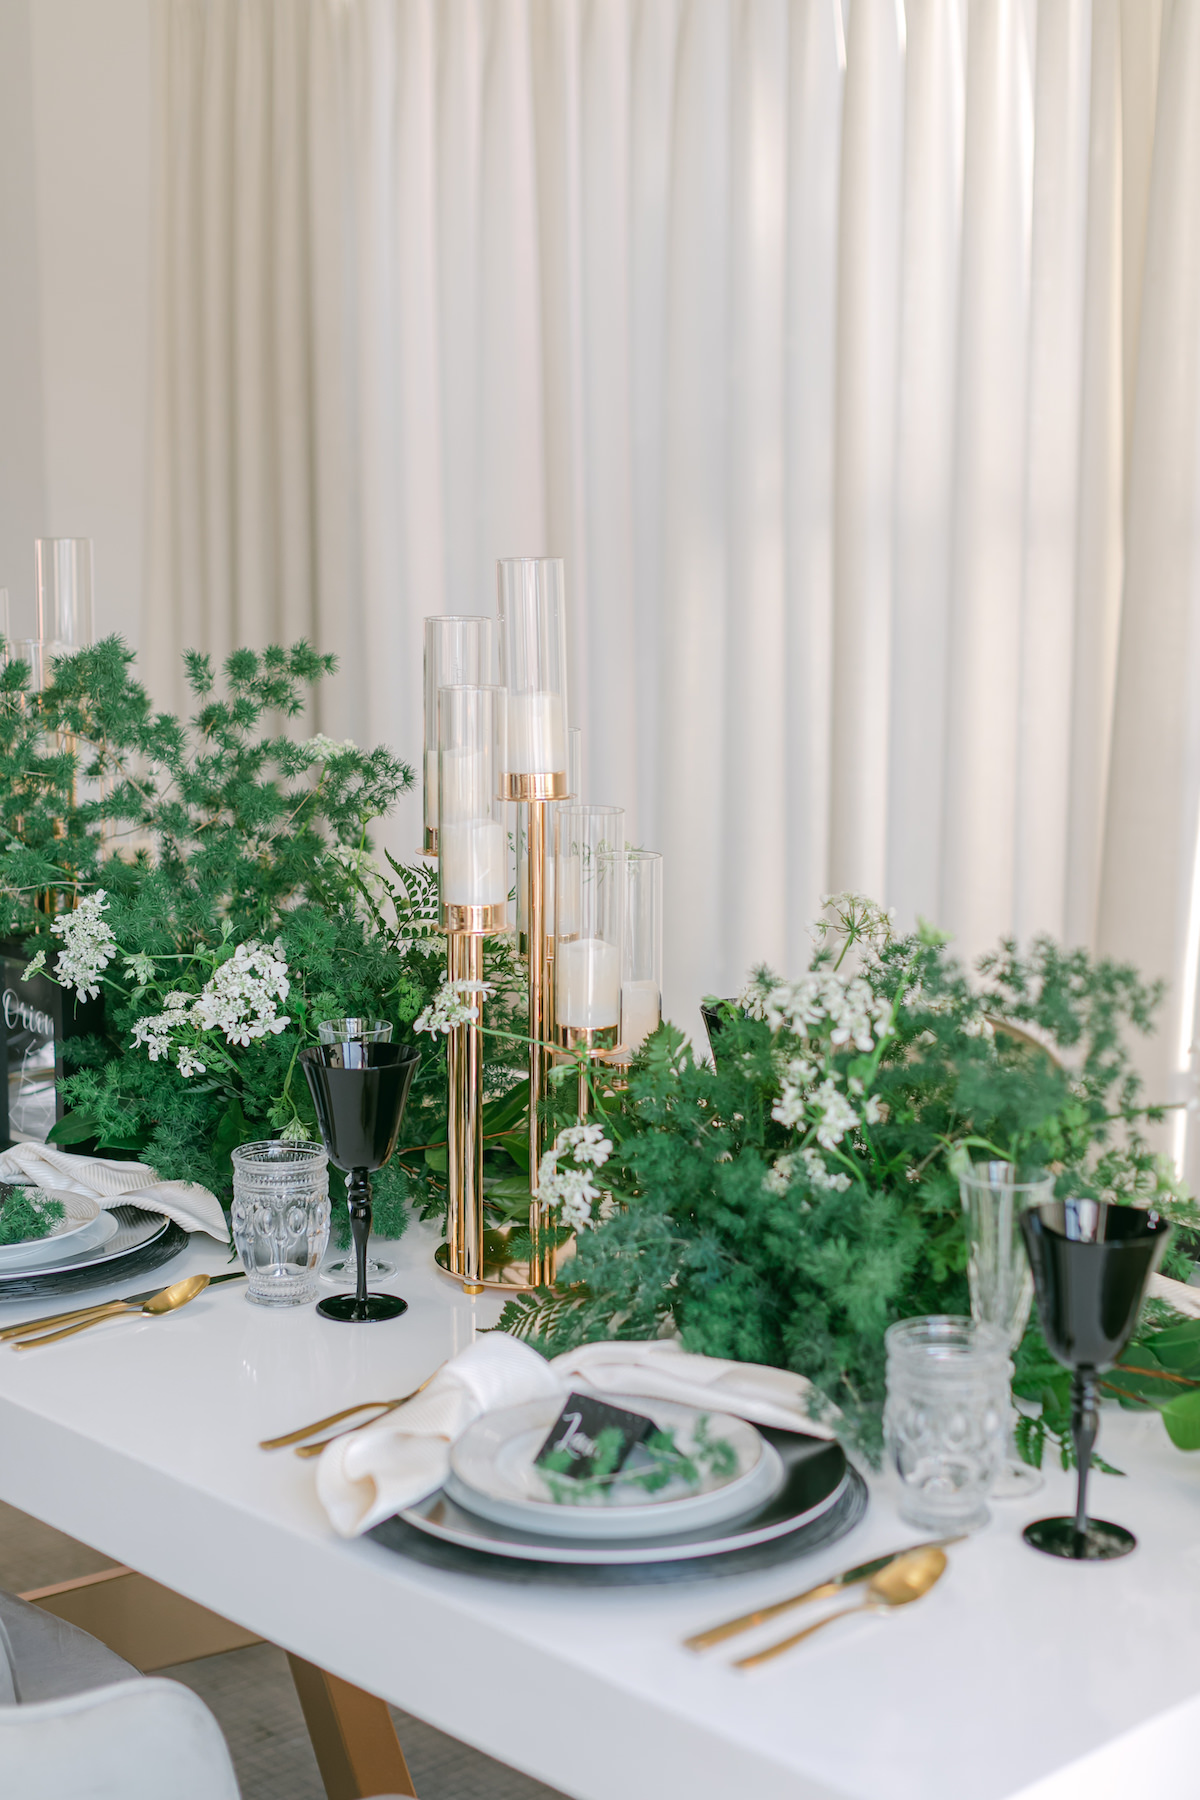 Minimalist contemporary table with greenery centerpieces - Lily Tapia Photography